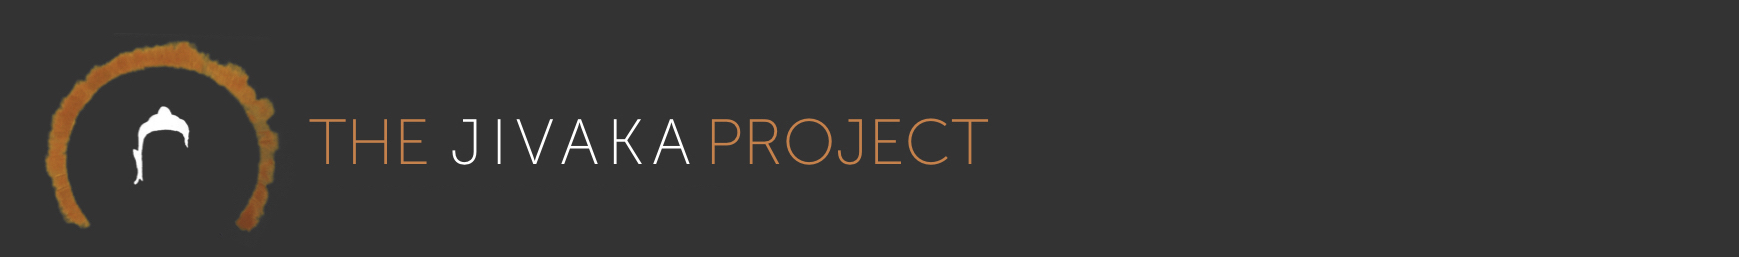 The Jivaka Project